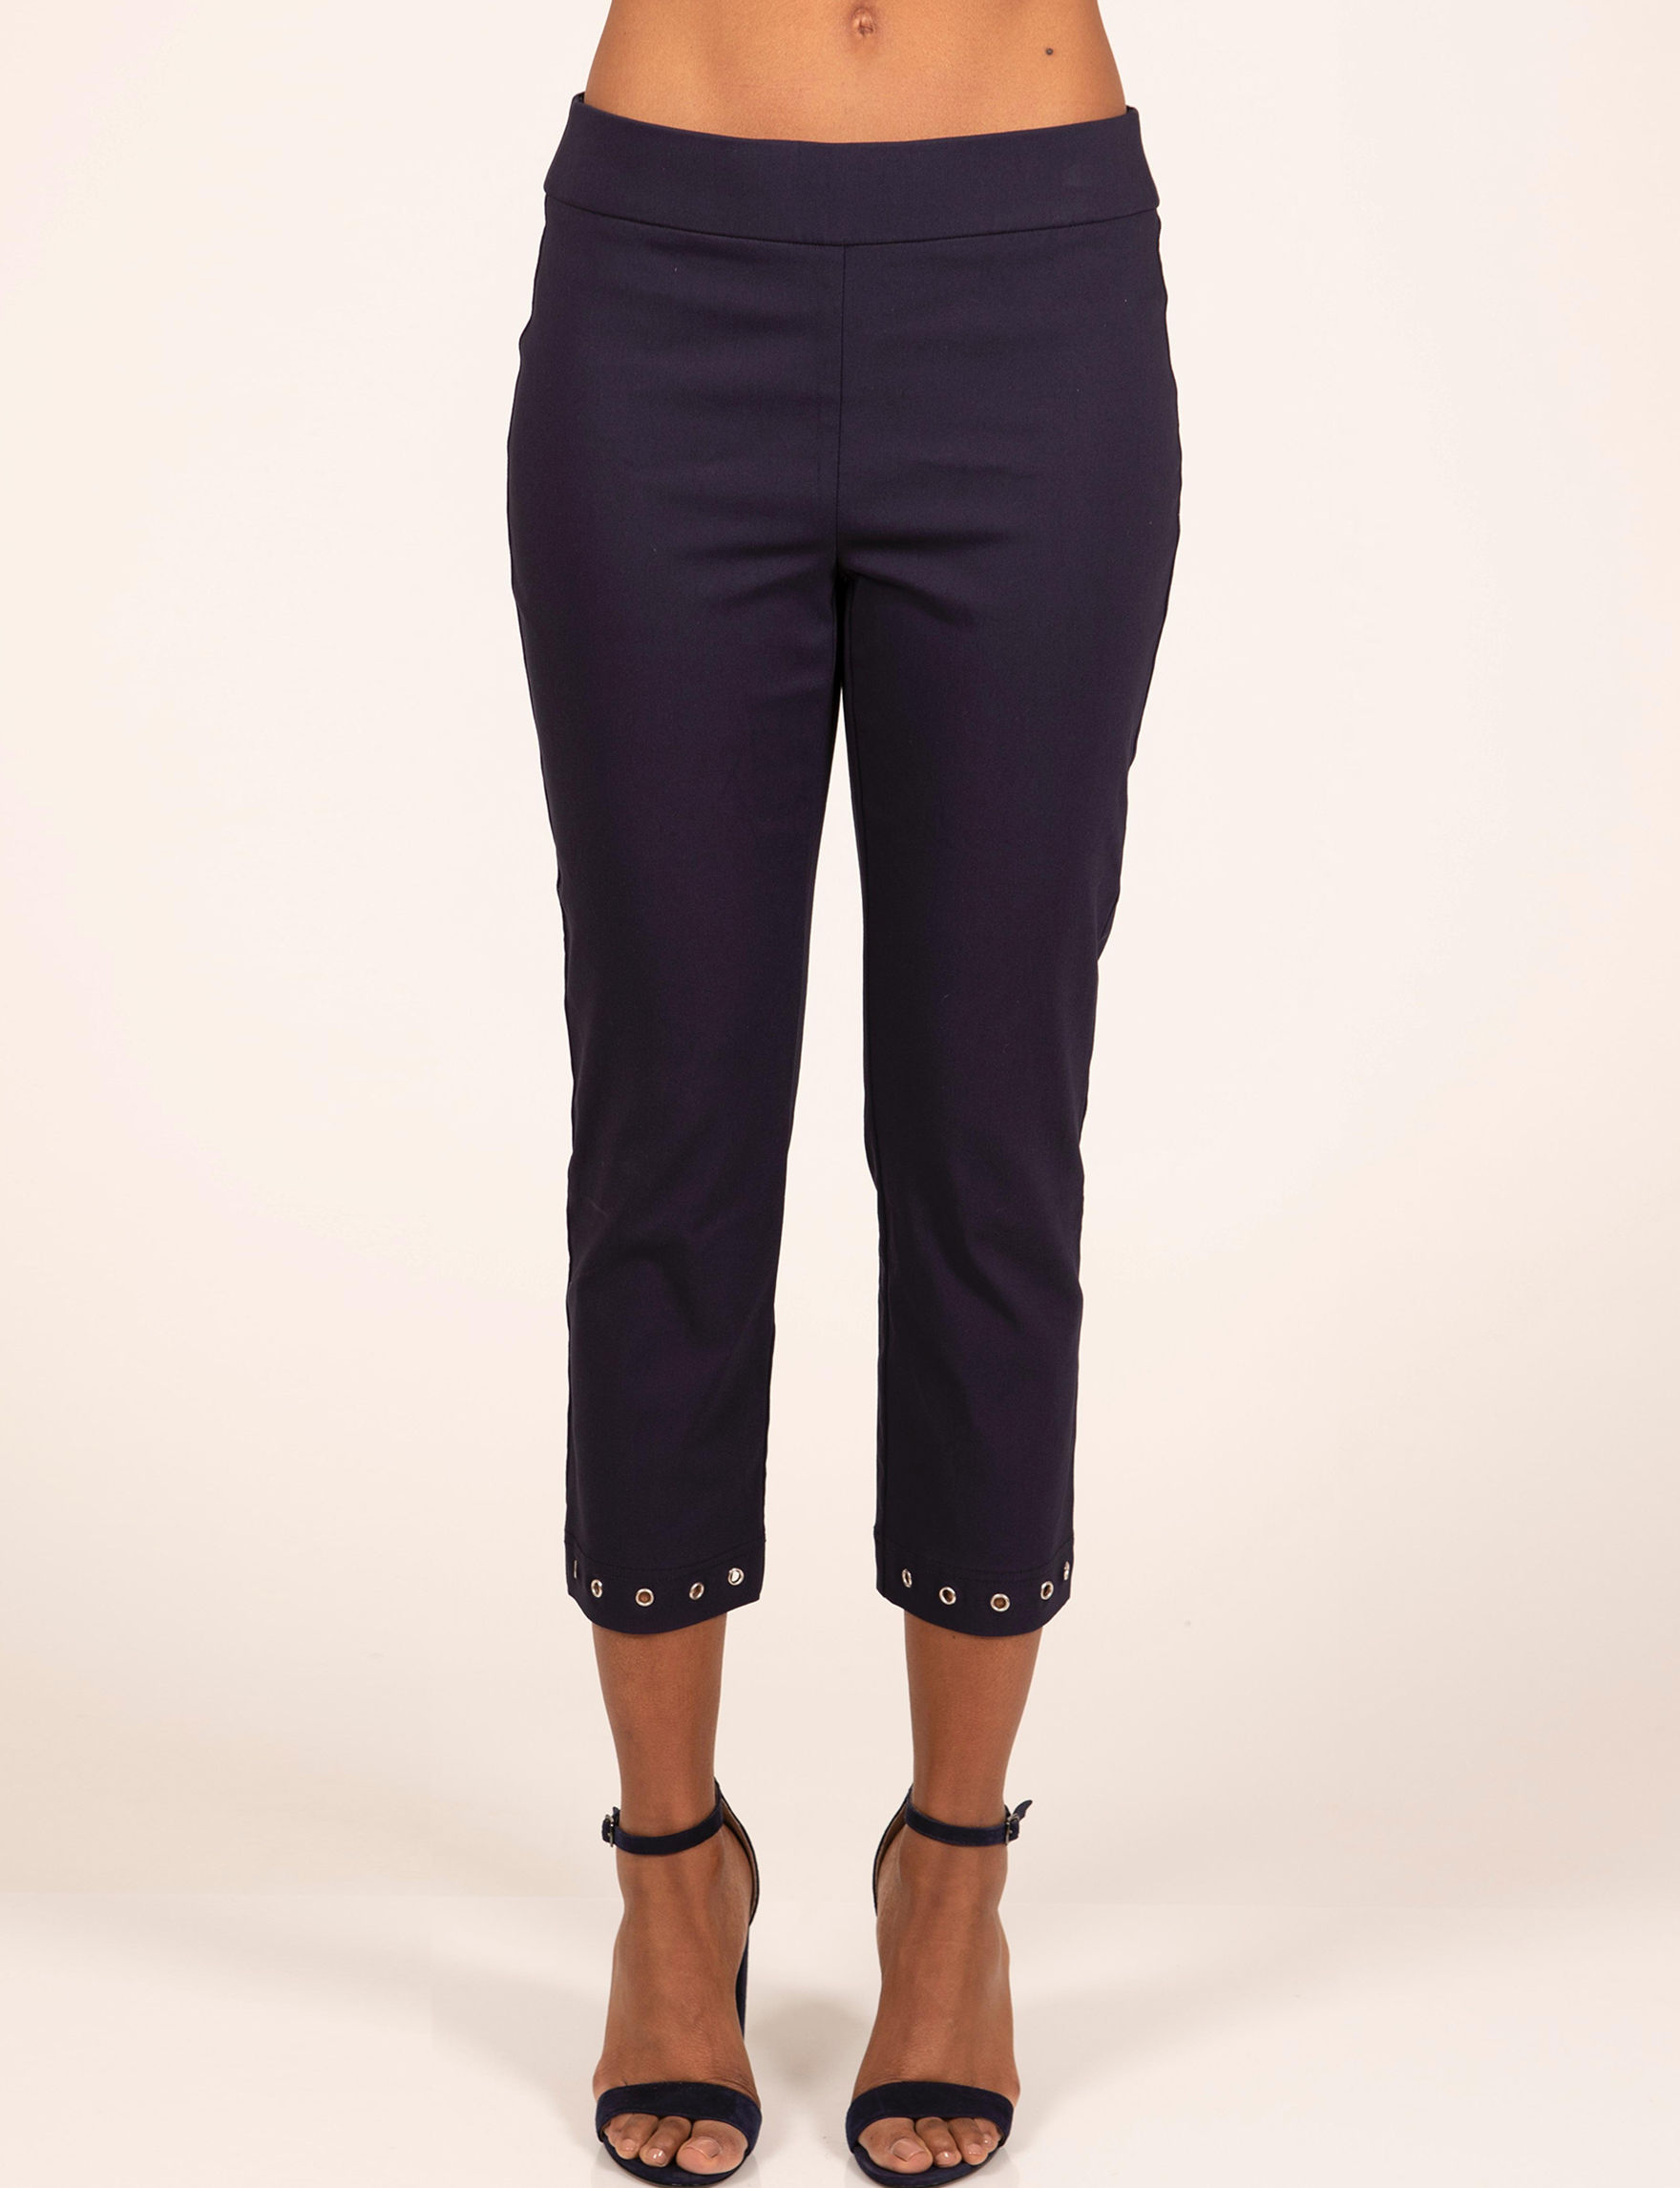 Skyes The Limit Navy Capris & Crops